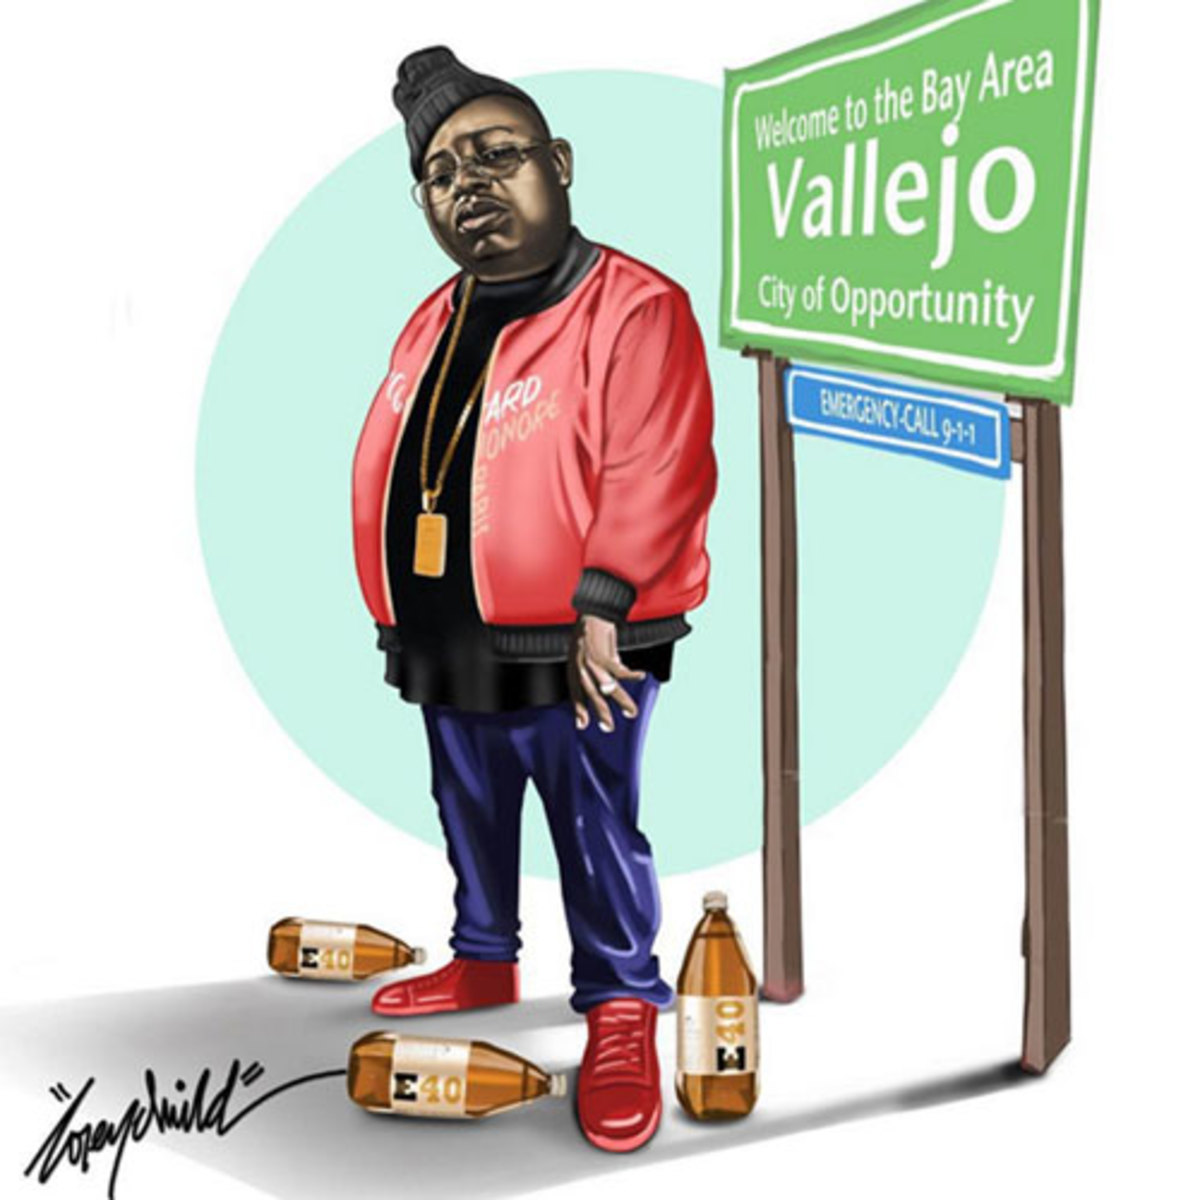 e-40-hyphy-culture-10-years.jpg